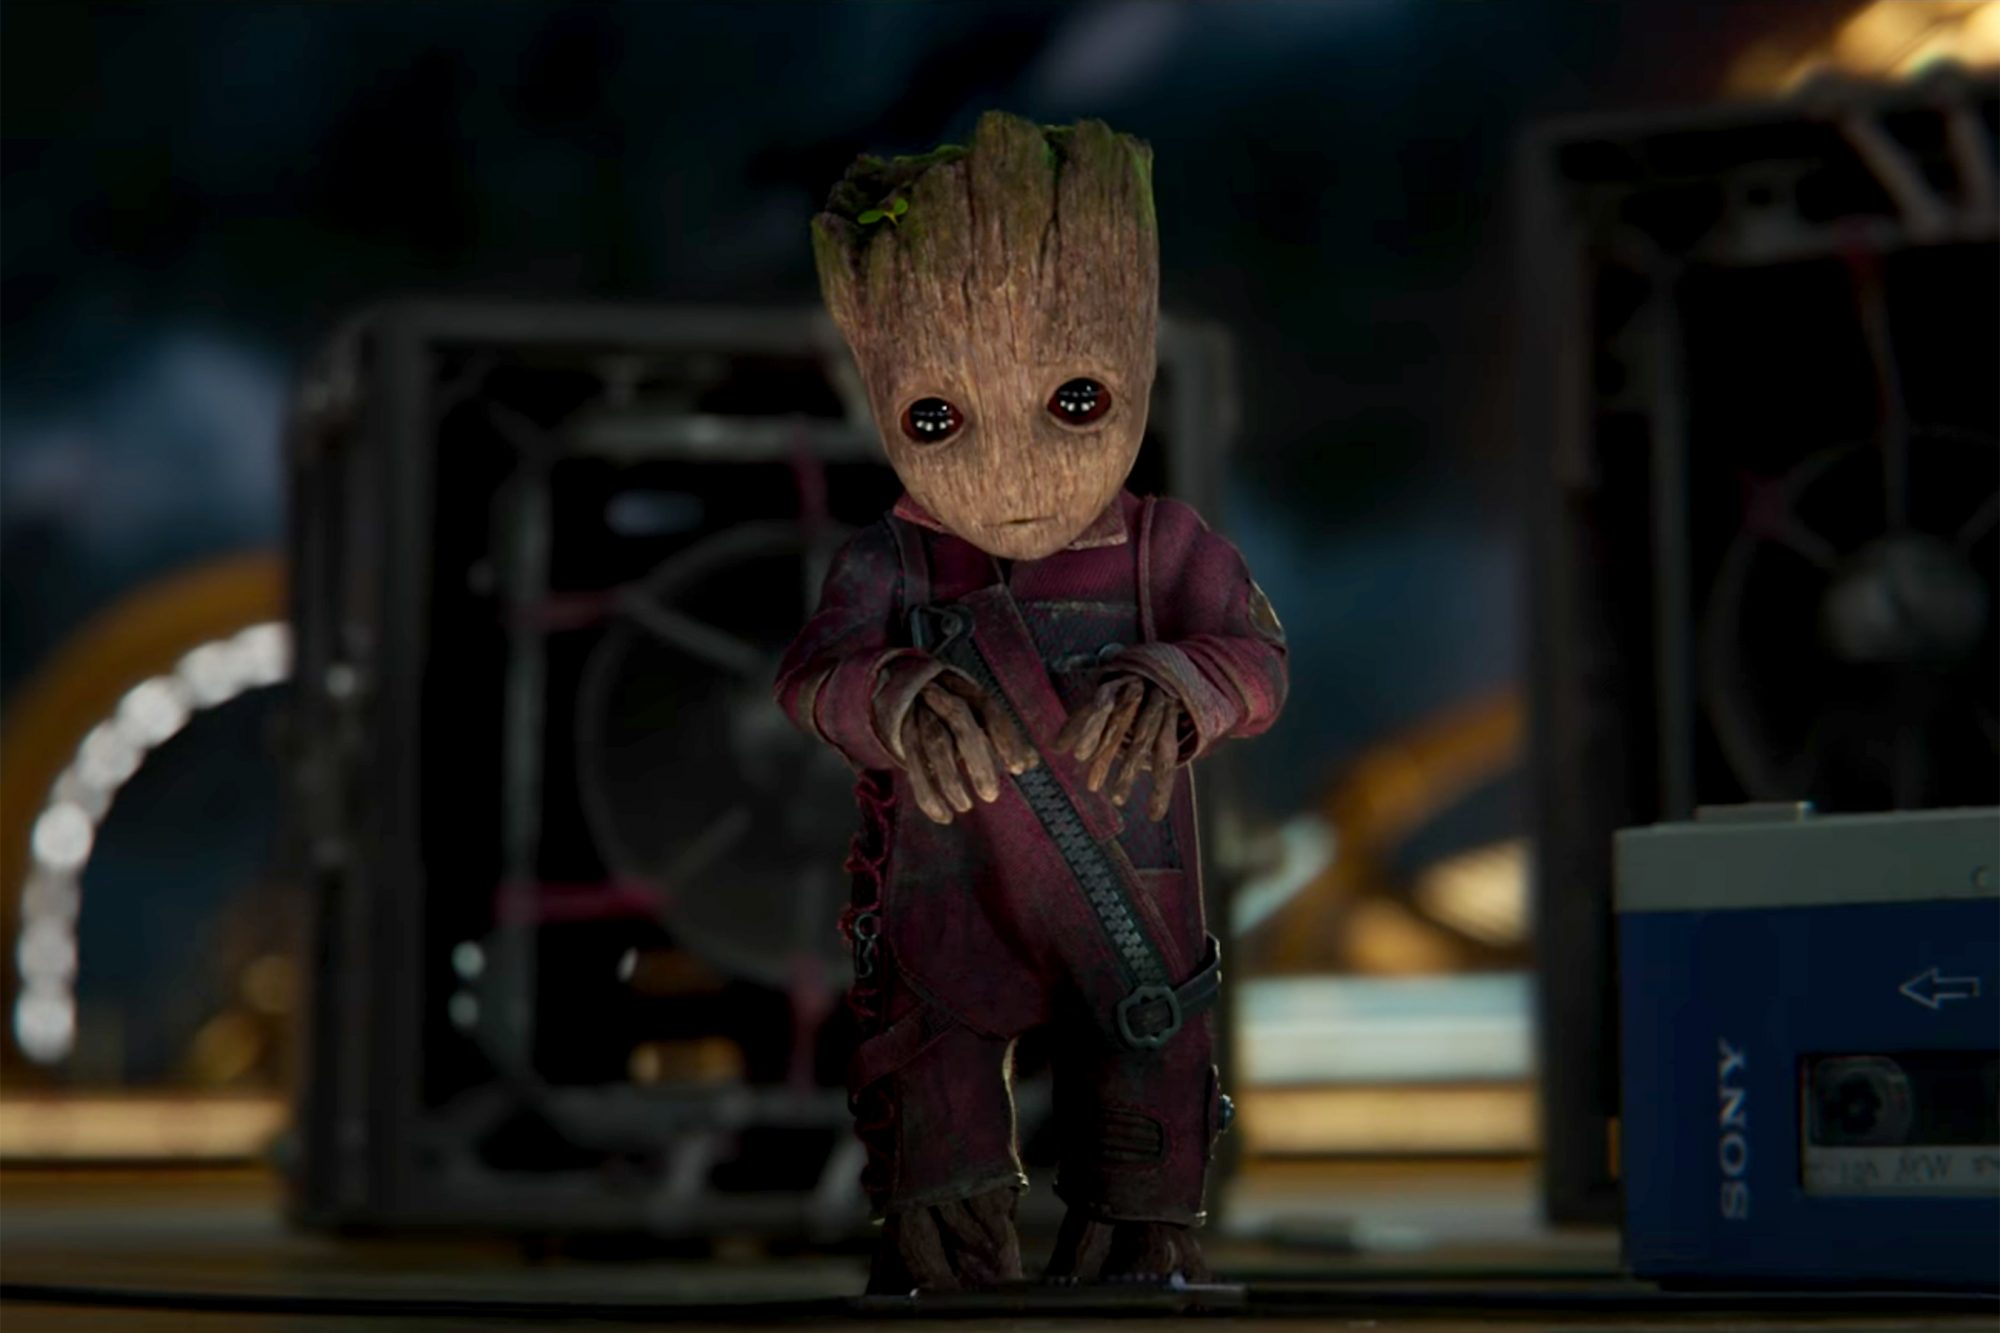 Guardians of the Galaxy Vol. 2 teaser